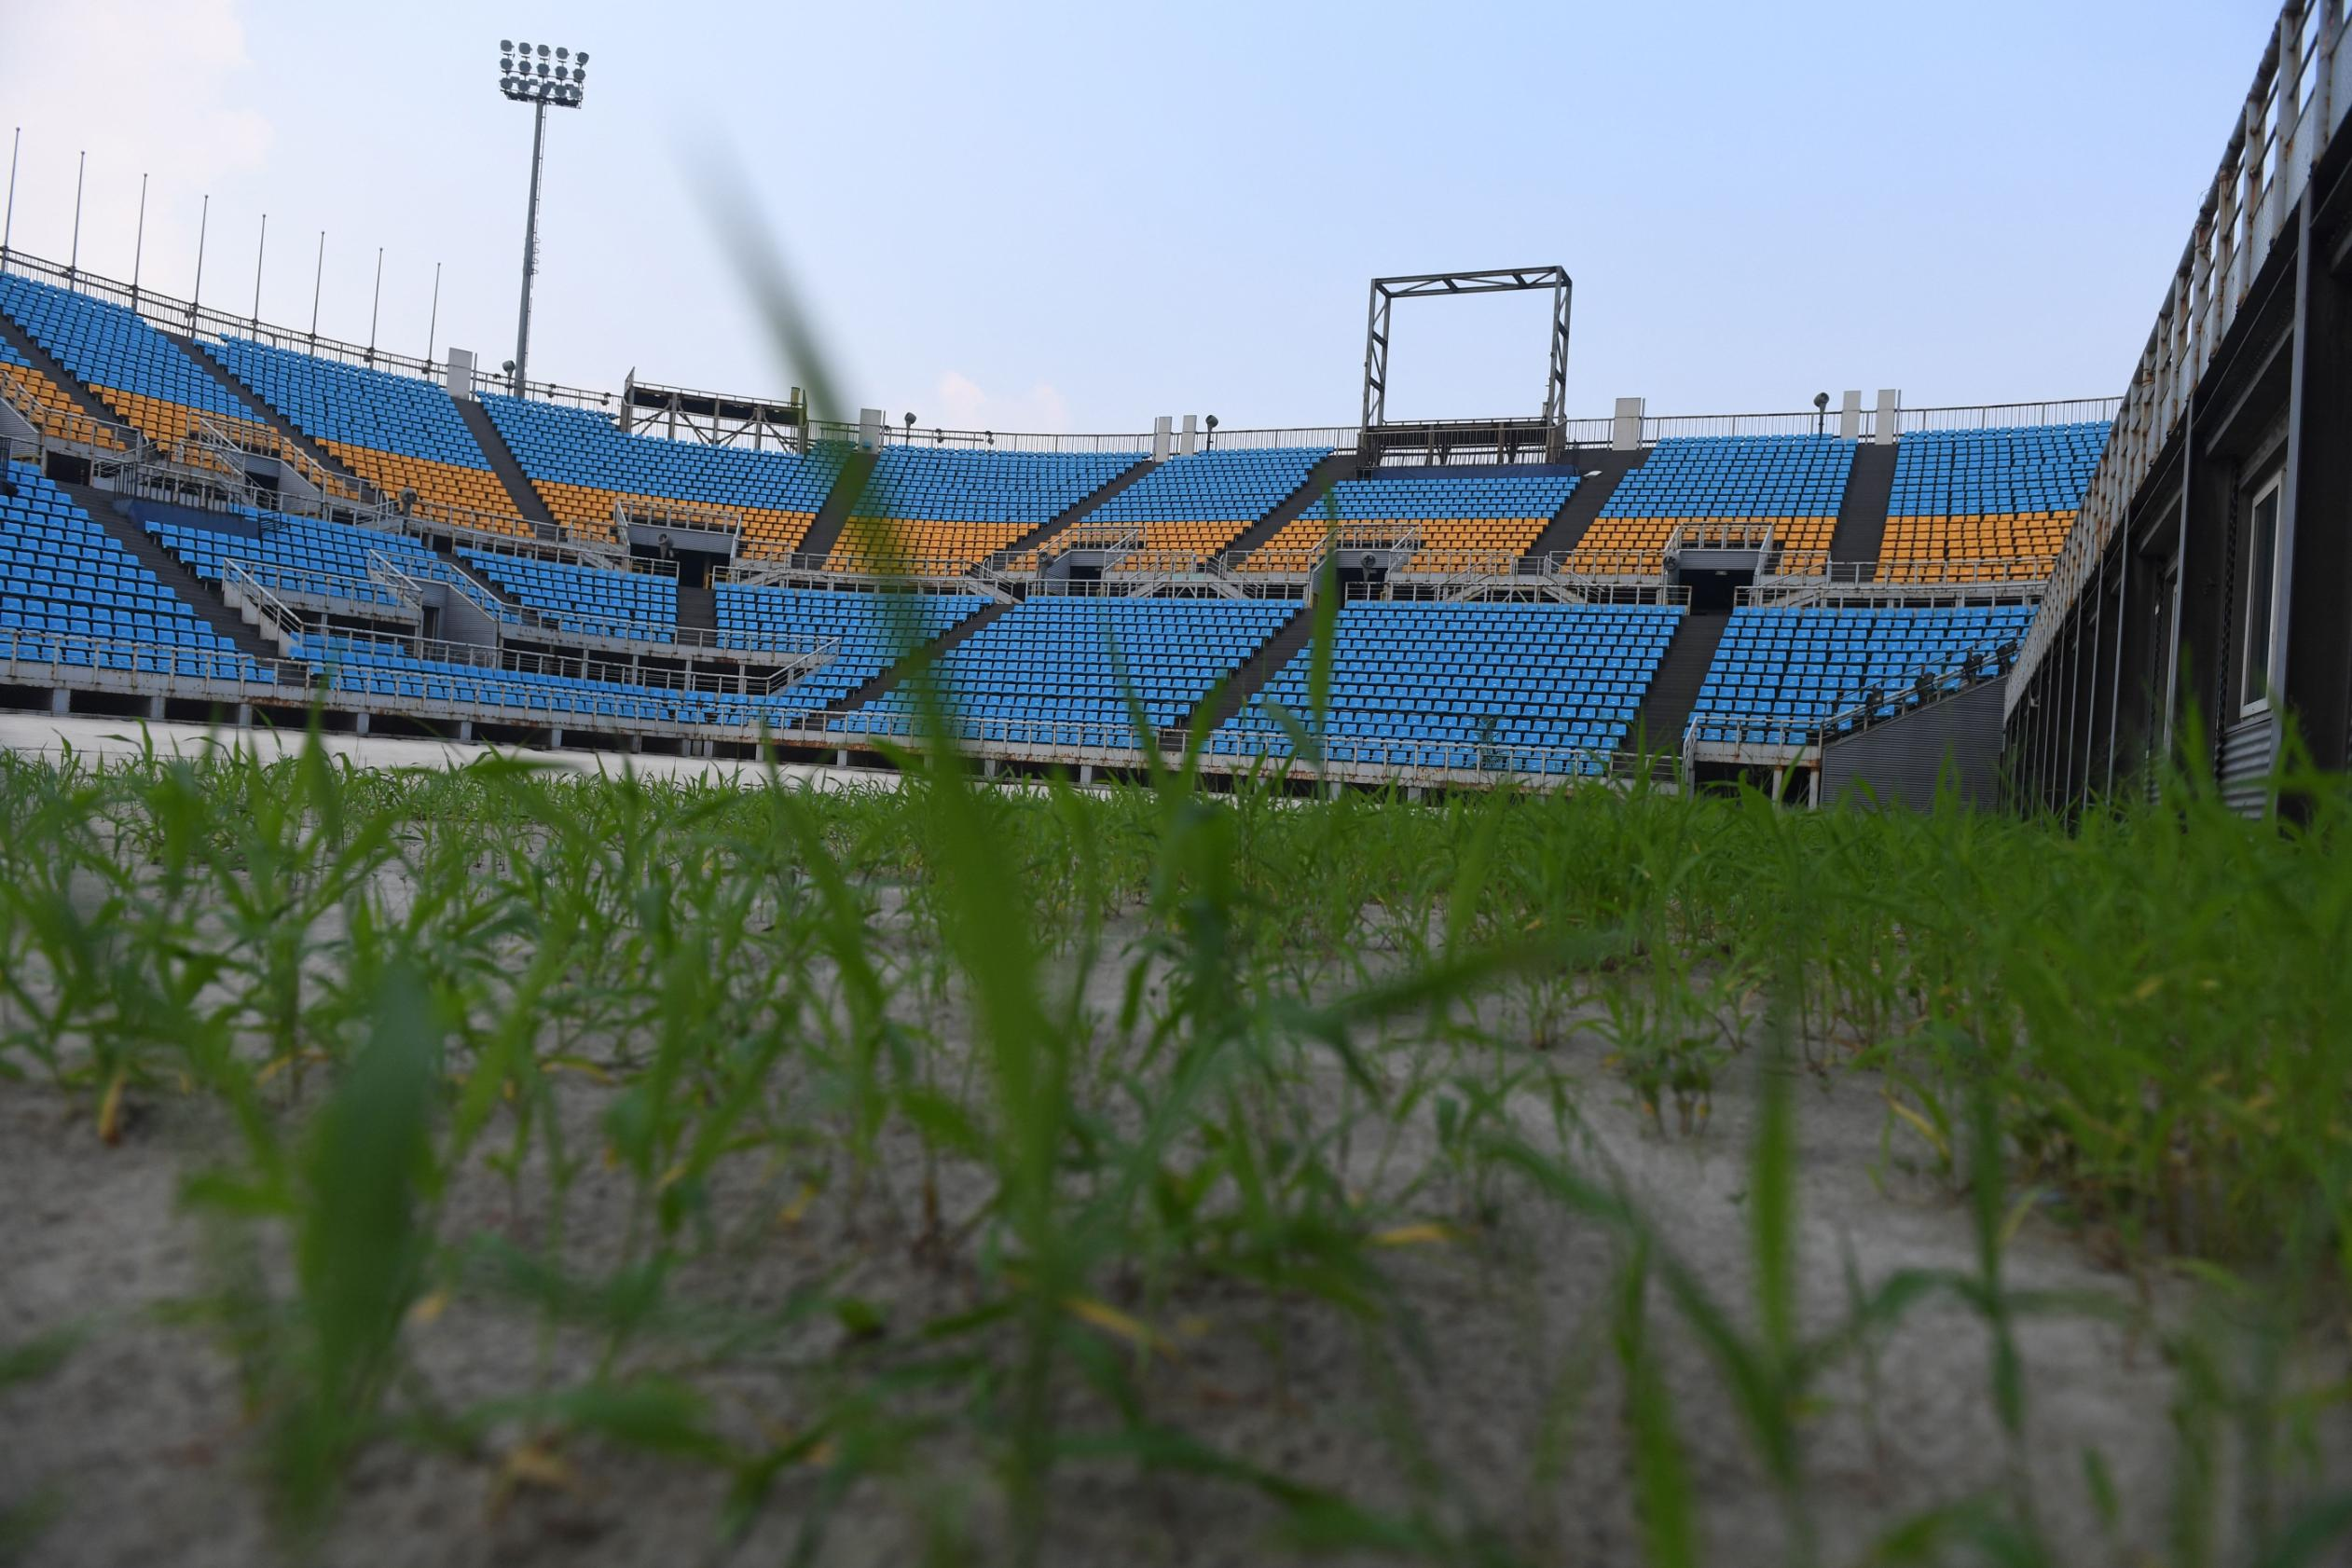 Beijing S Abandoned Olympic Venues In